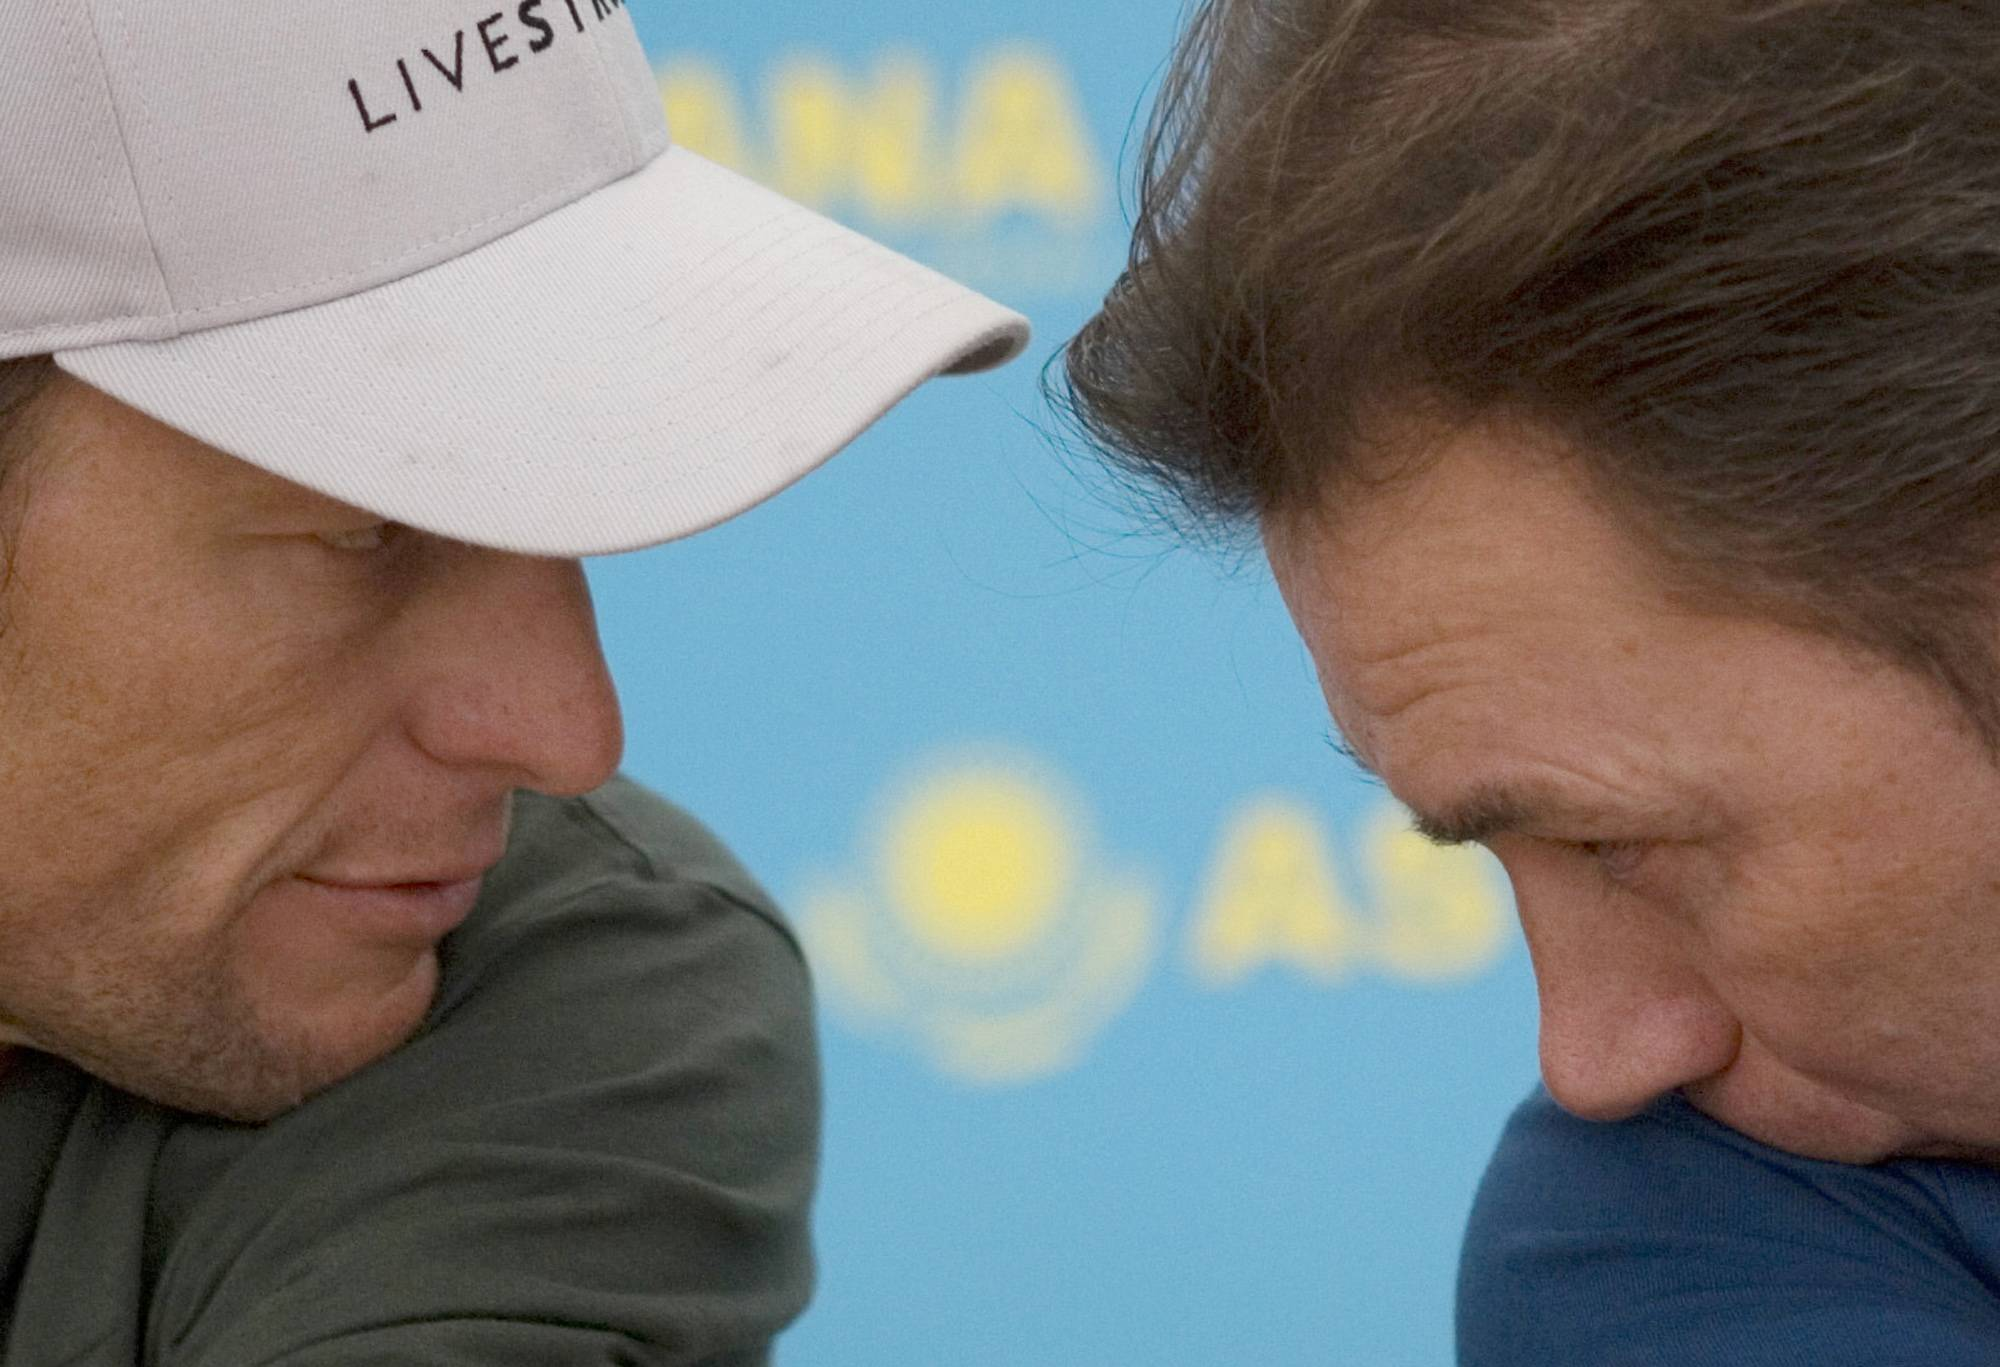 Lance Armstrong's longtime coach Johan Bruyneel, right, was banned for 10 years Tuesday April 22, 2014 for helping organize widespread doping by the former seven-time Tour de France winner's cycling teams.